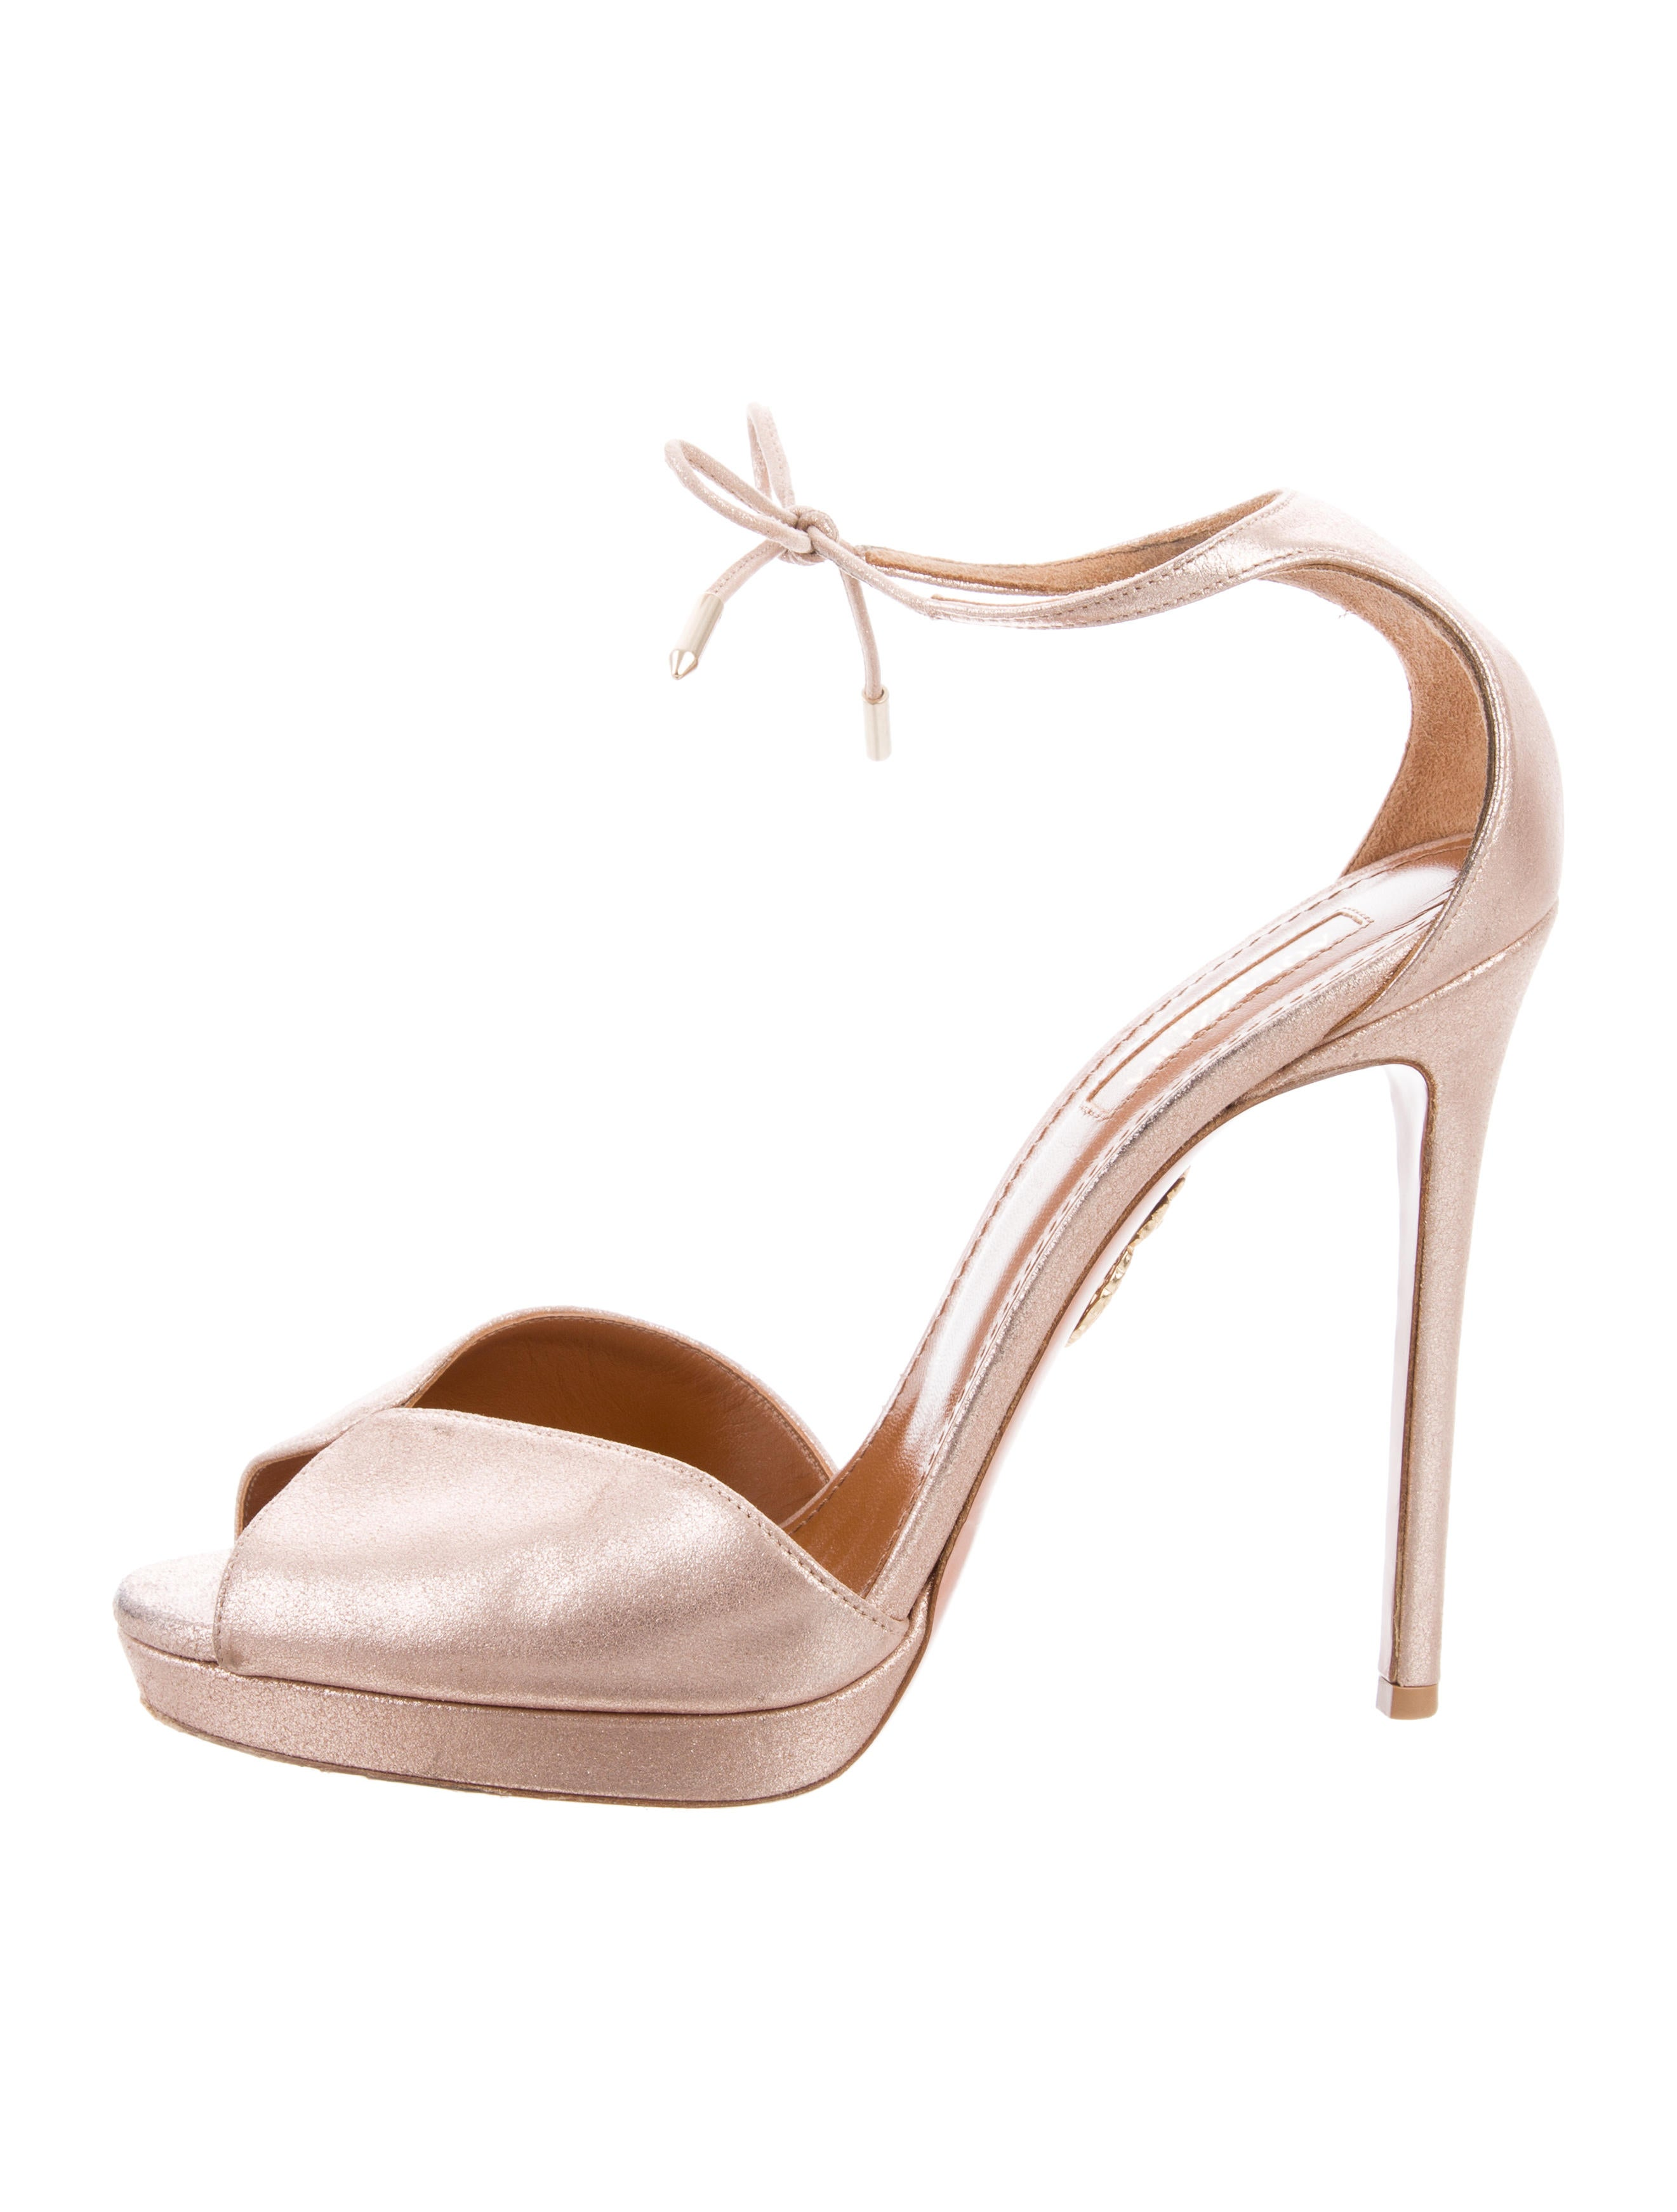 clearance great deals Aquazzura Metallic Peep-Toe Pumps free shipping best store to get sale in China buy cheap popular low cost cheap online YJpmikb5